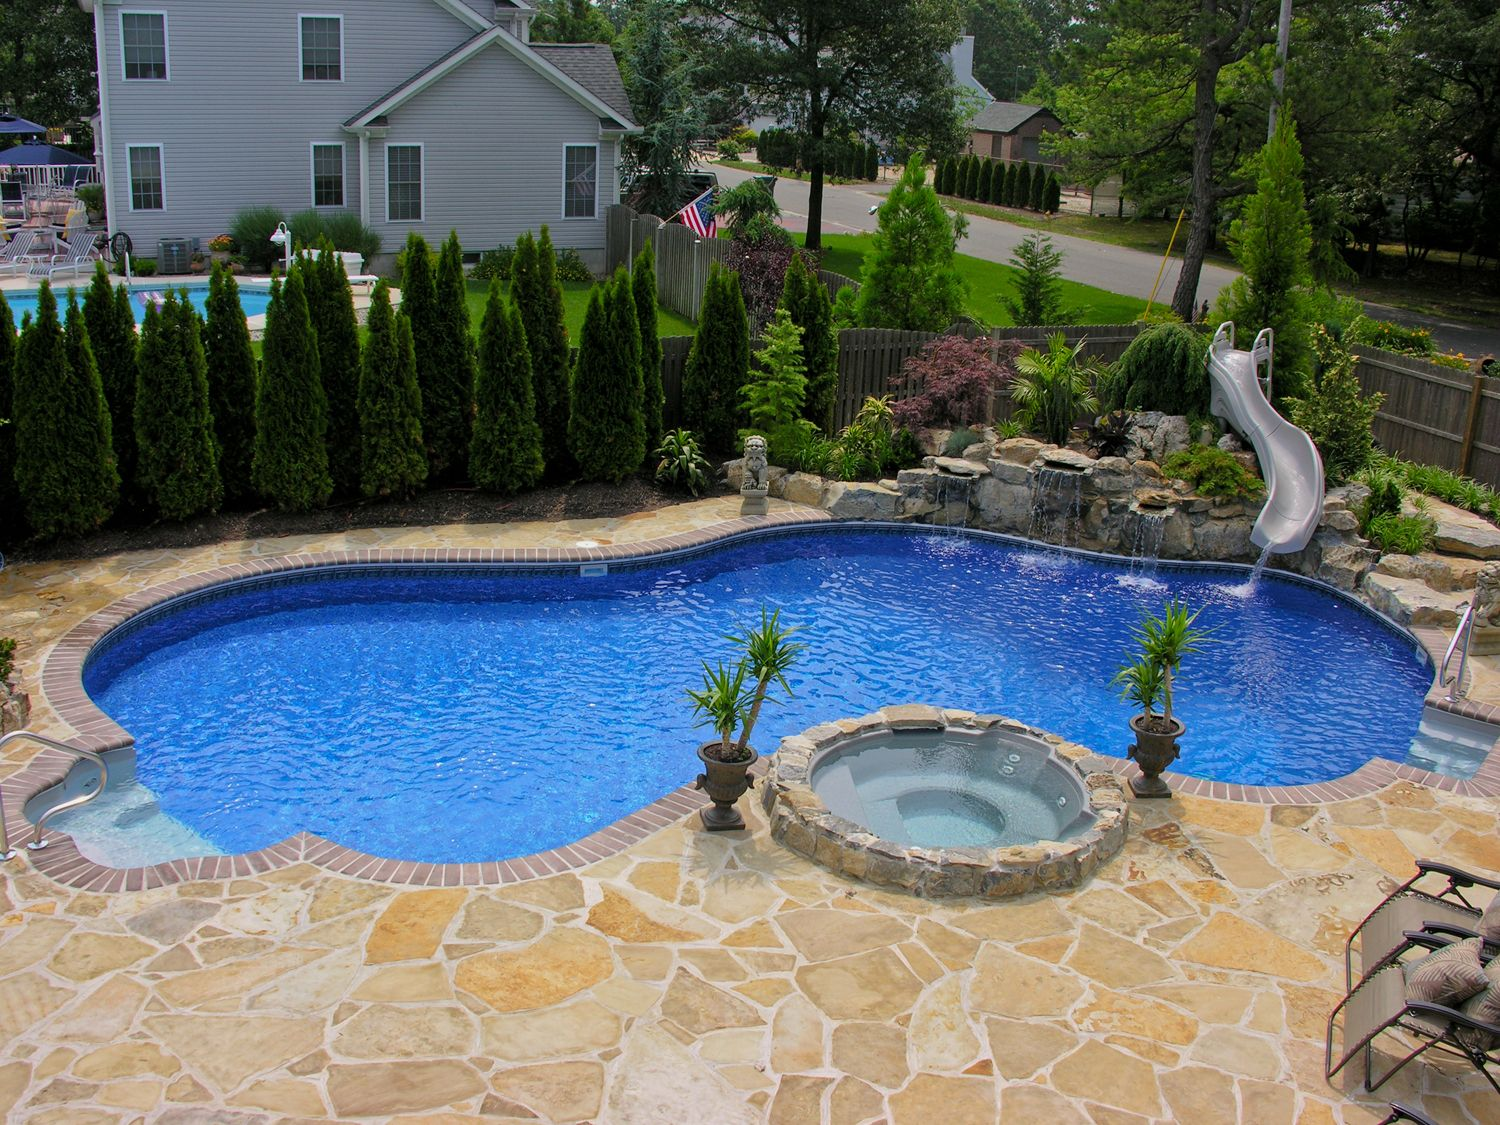 Pool town nj inground swimming pools with spa and slide for Pool design with hot tub